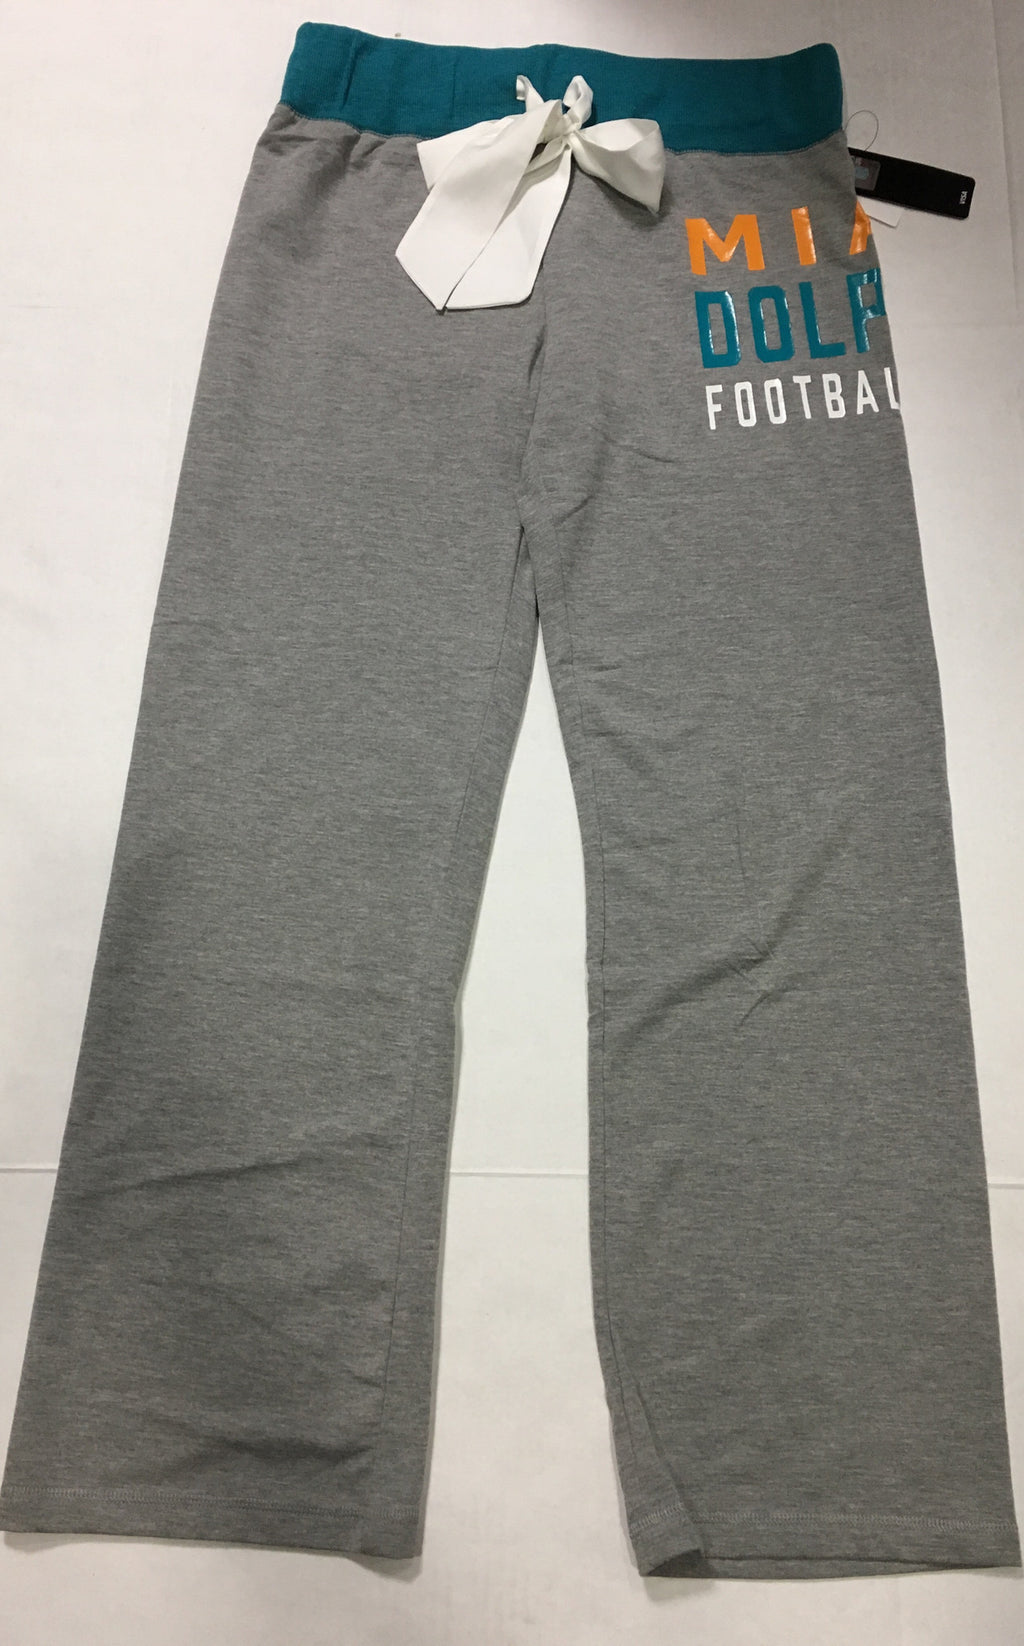 Miami Dolphins Women's Tri-Blend Sweatpants  - Grey/Aqua